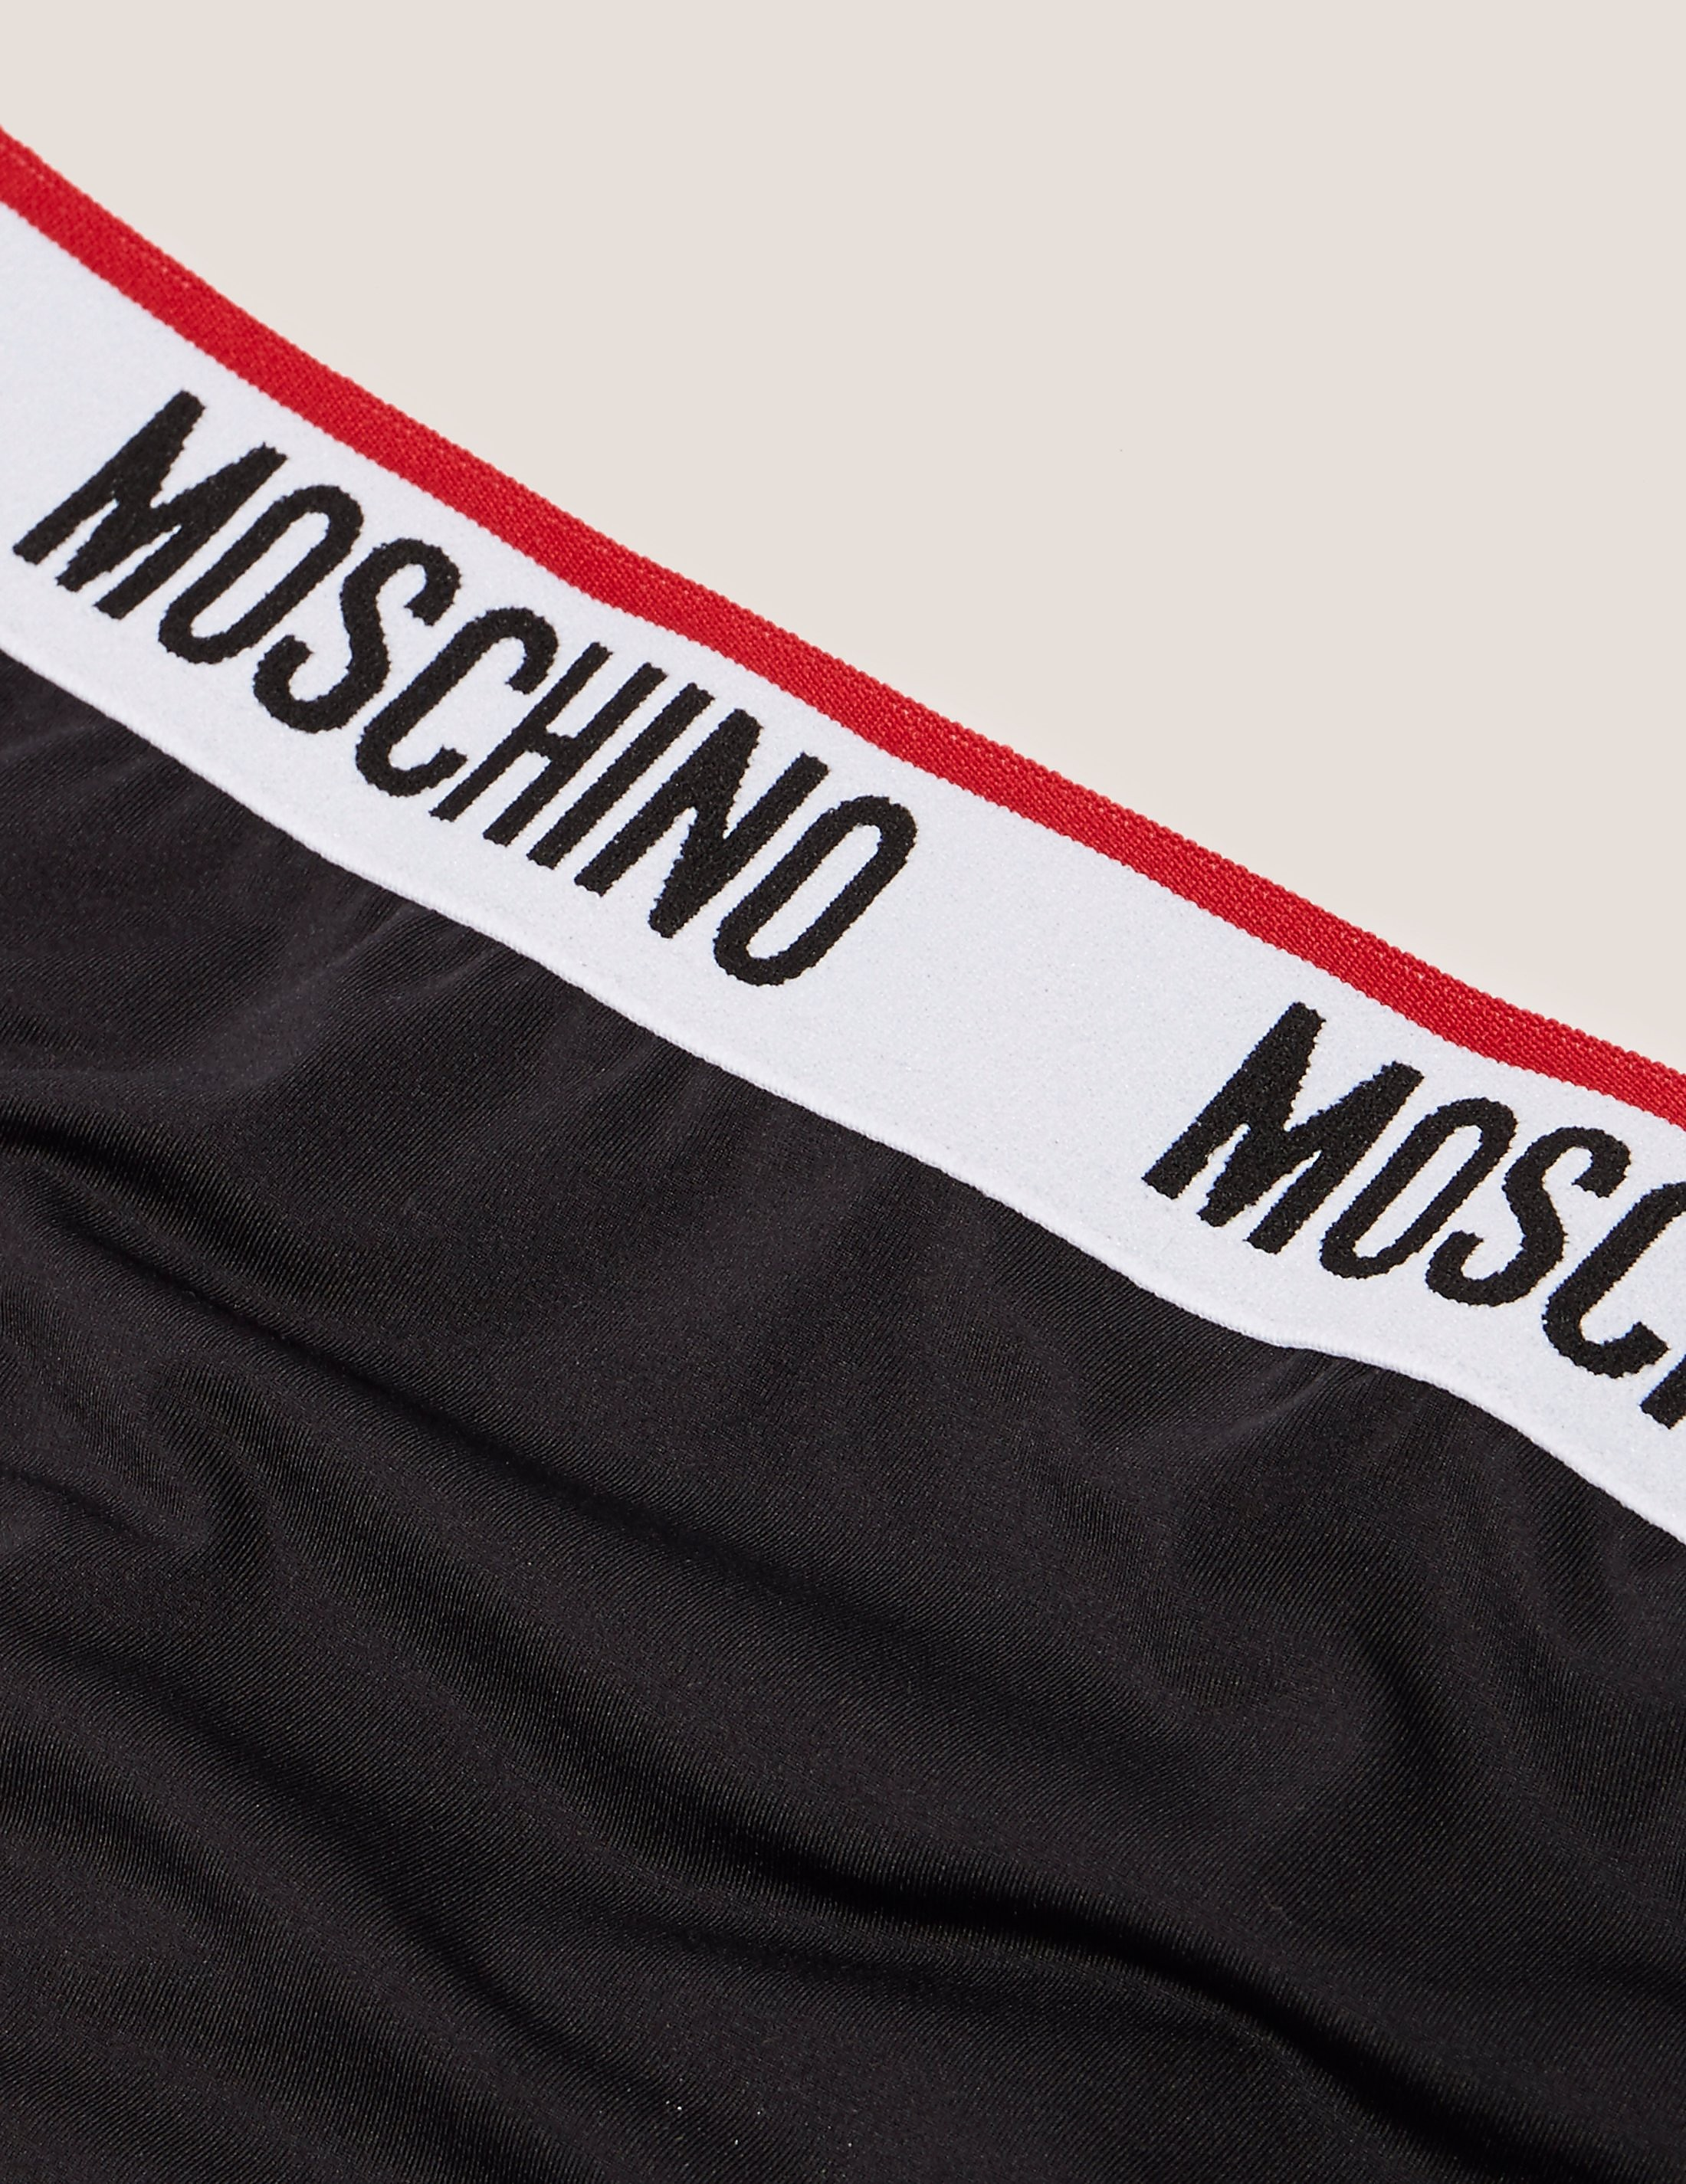 Moschino Taped Briefs